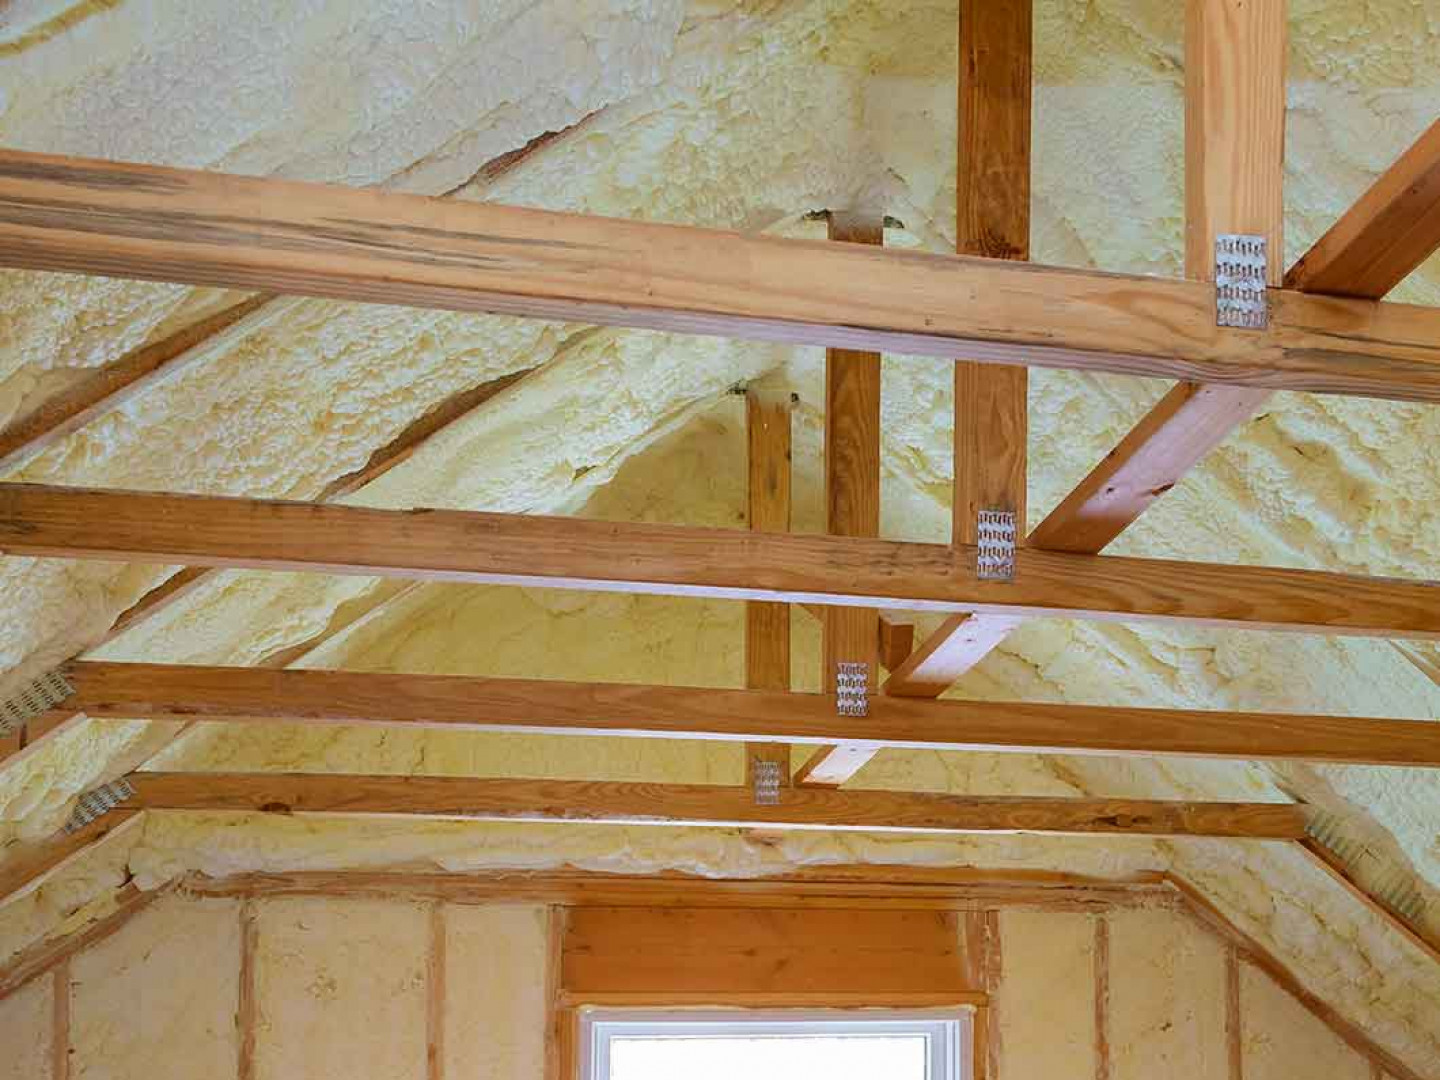 When should you install spray foam insulation?